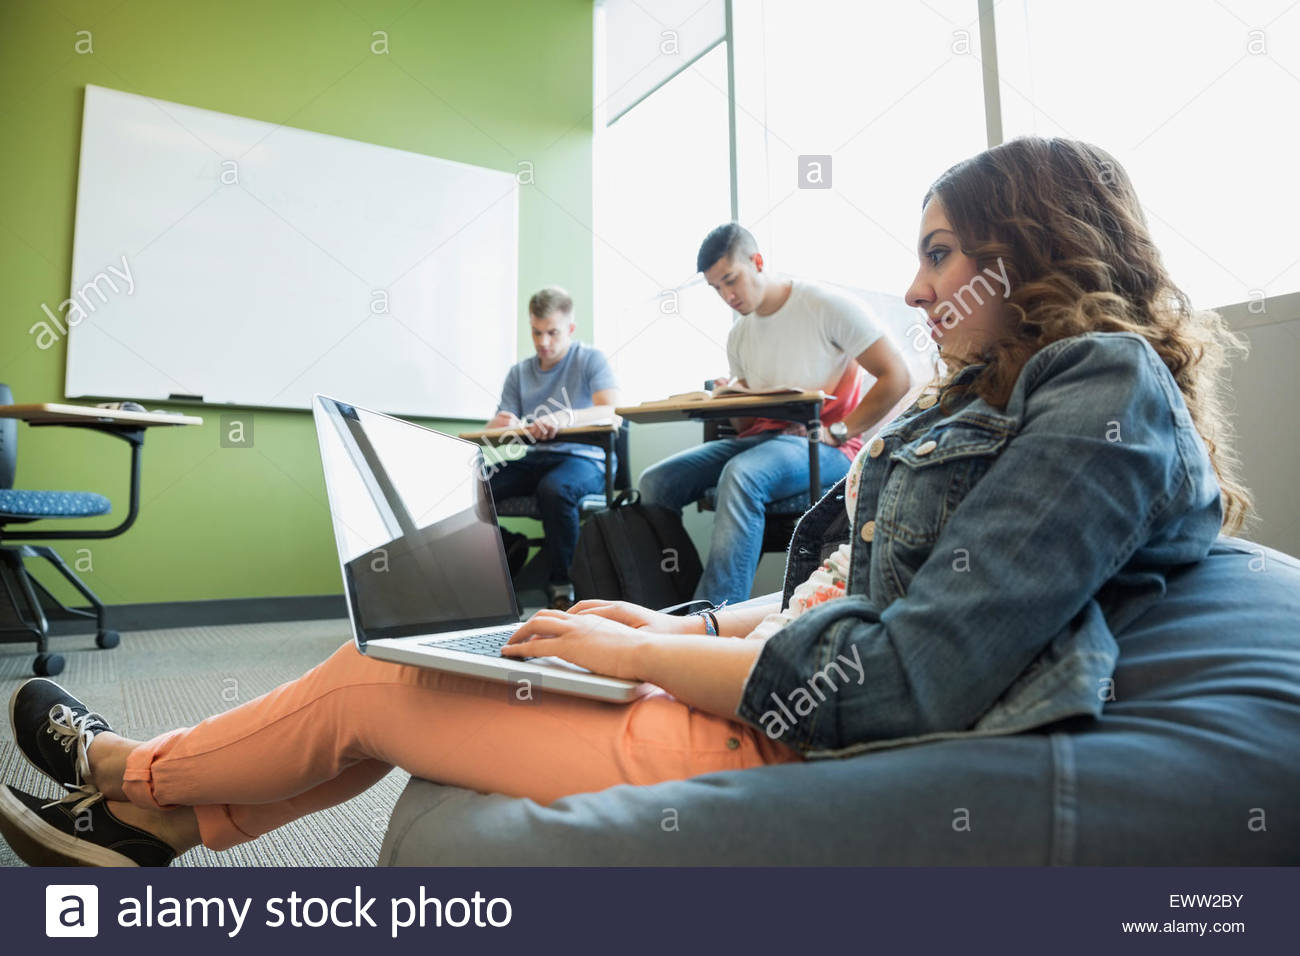 College student using laptop on bean bag chair - Stock Image